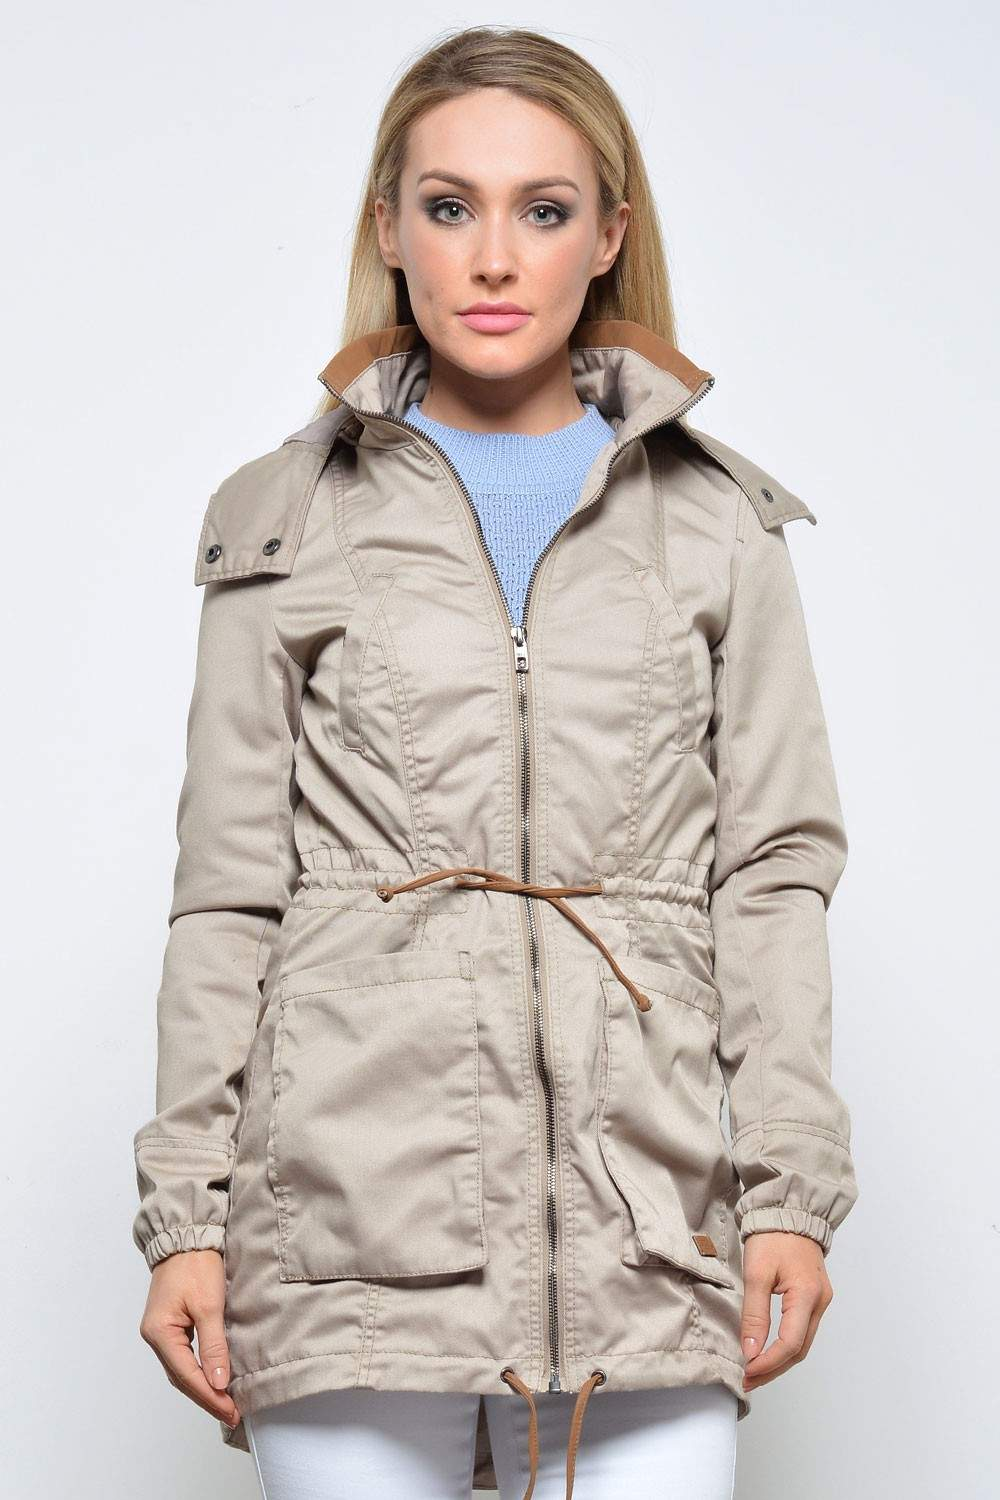 New Olga Spring Parka Jacket in Simply Taupe